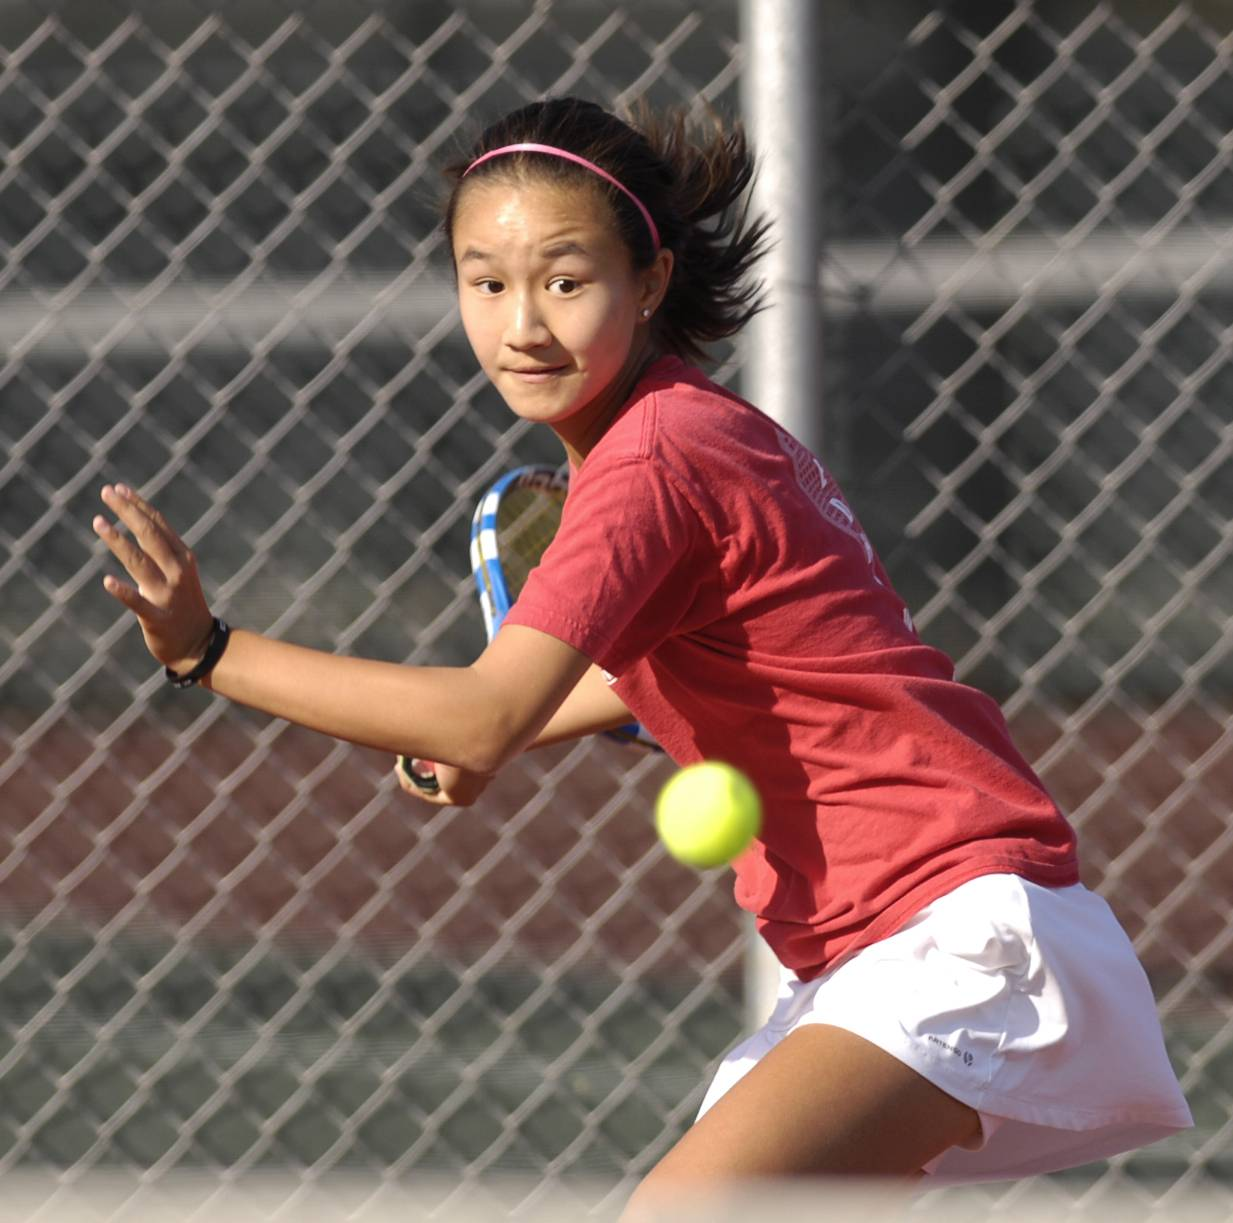 Tiffany Chen of Naperville Central plays against Anusha Pai of Neuqua Valley in girls varsity tennis, Wednesday.